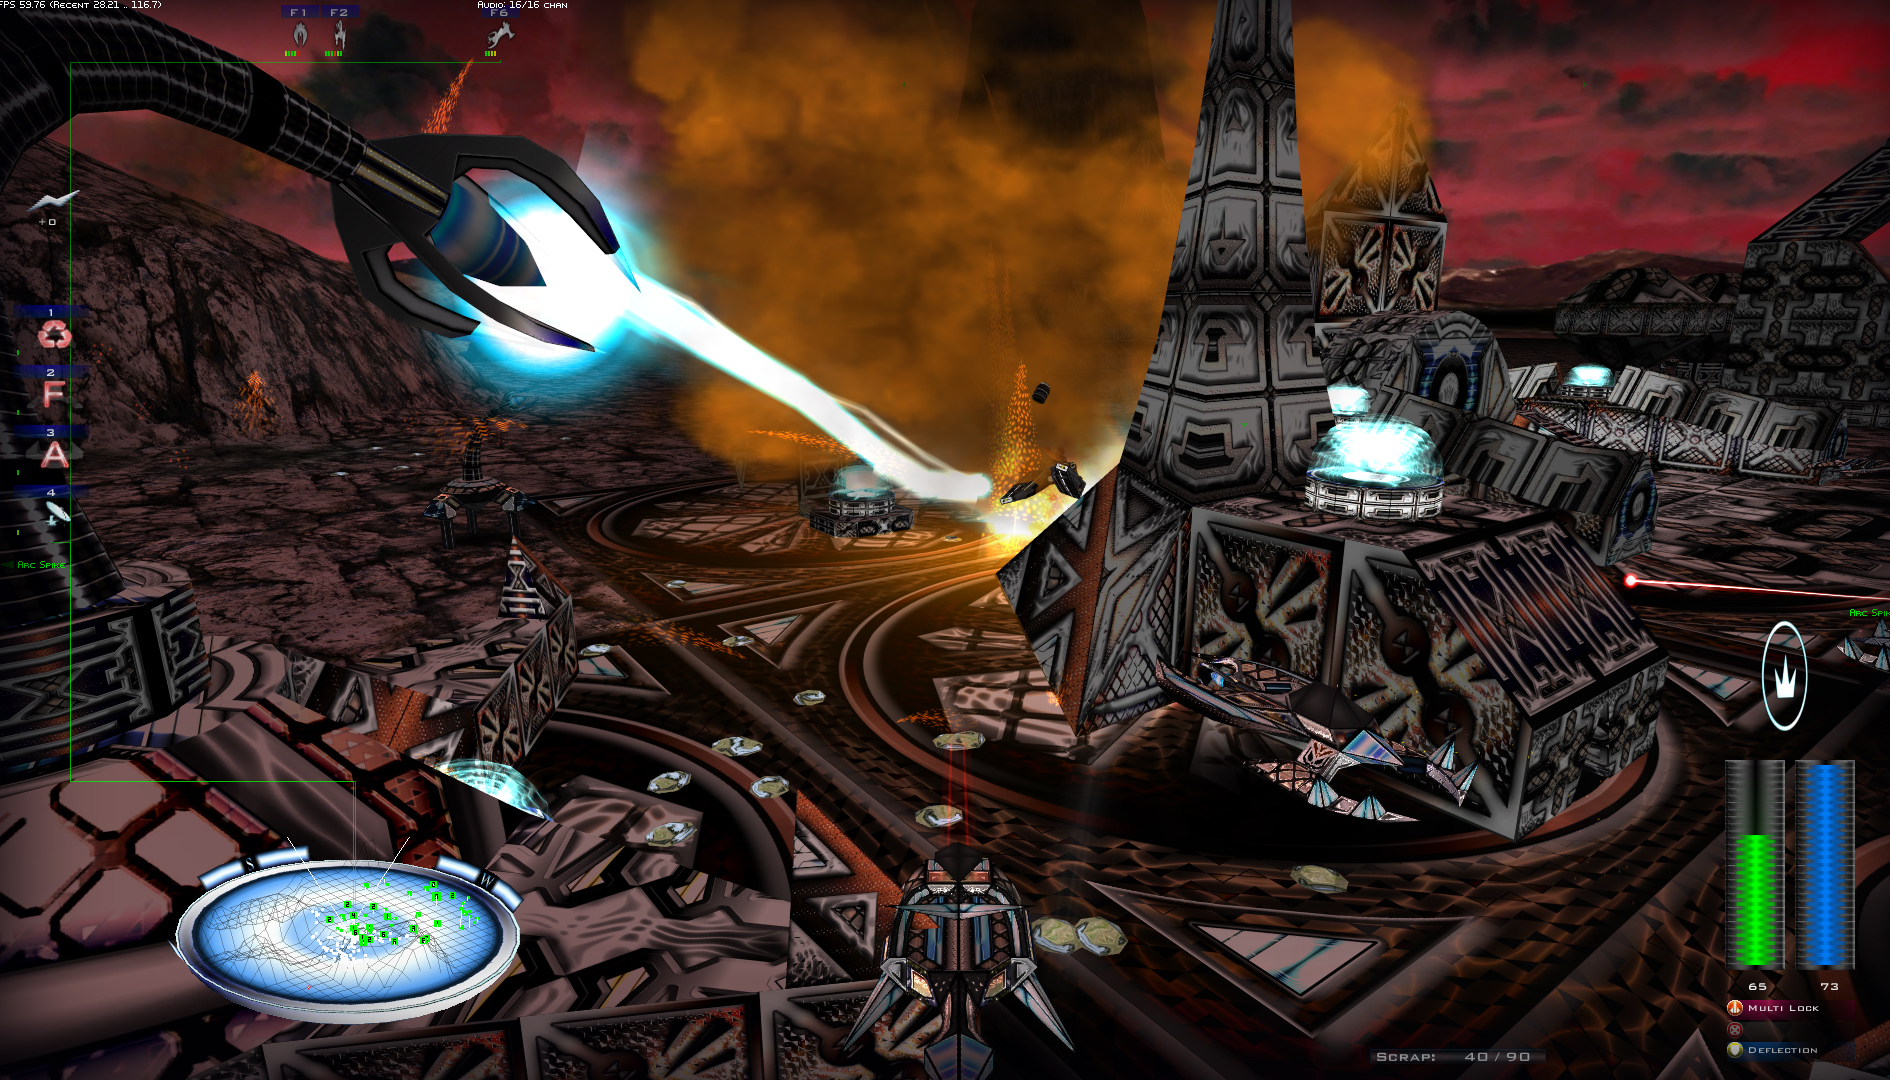 Unknown image qf2 essence to a thief battlezone ii for Battlezone 2